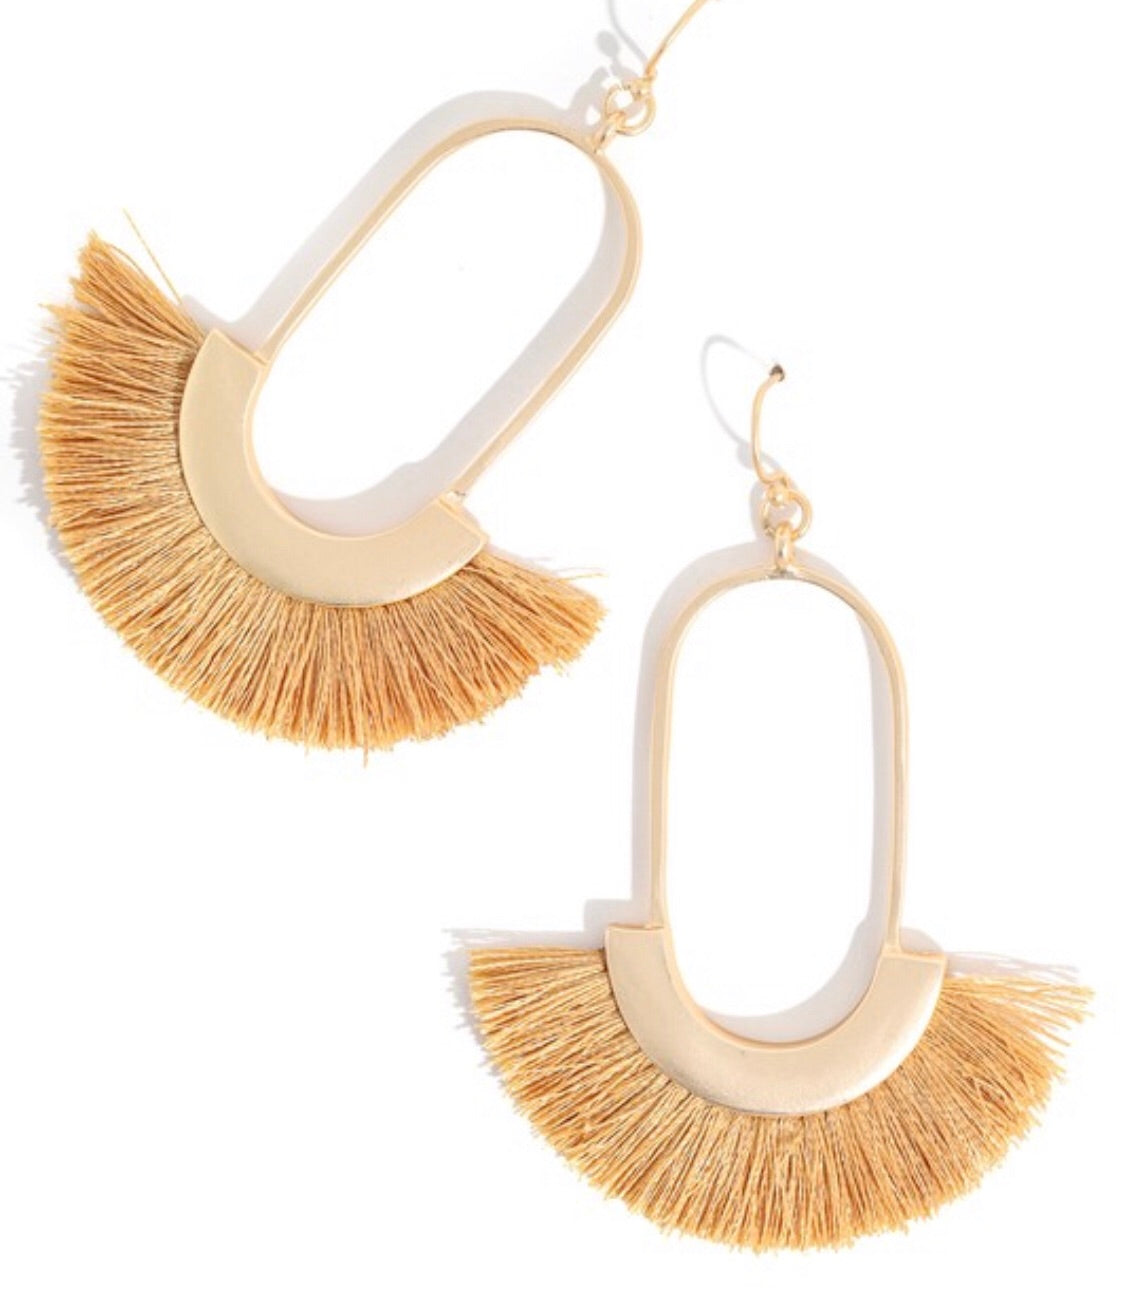 Run A Lap Earrings in Mustard